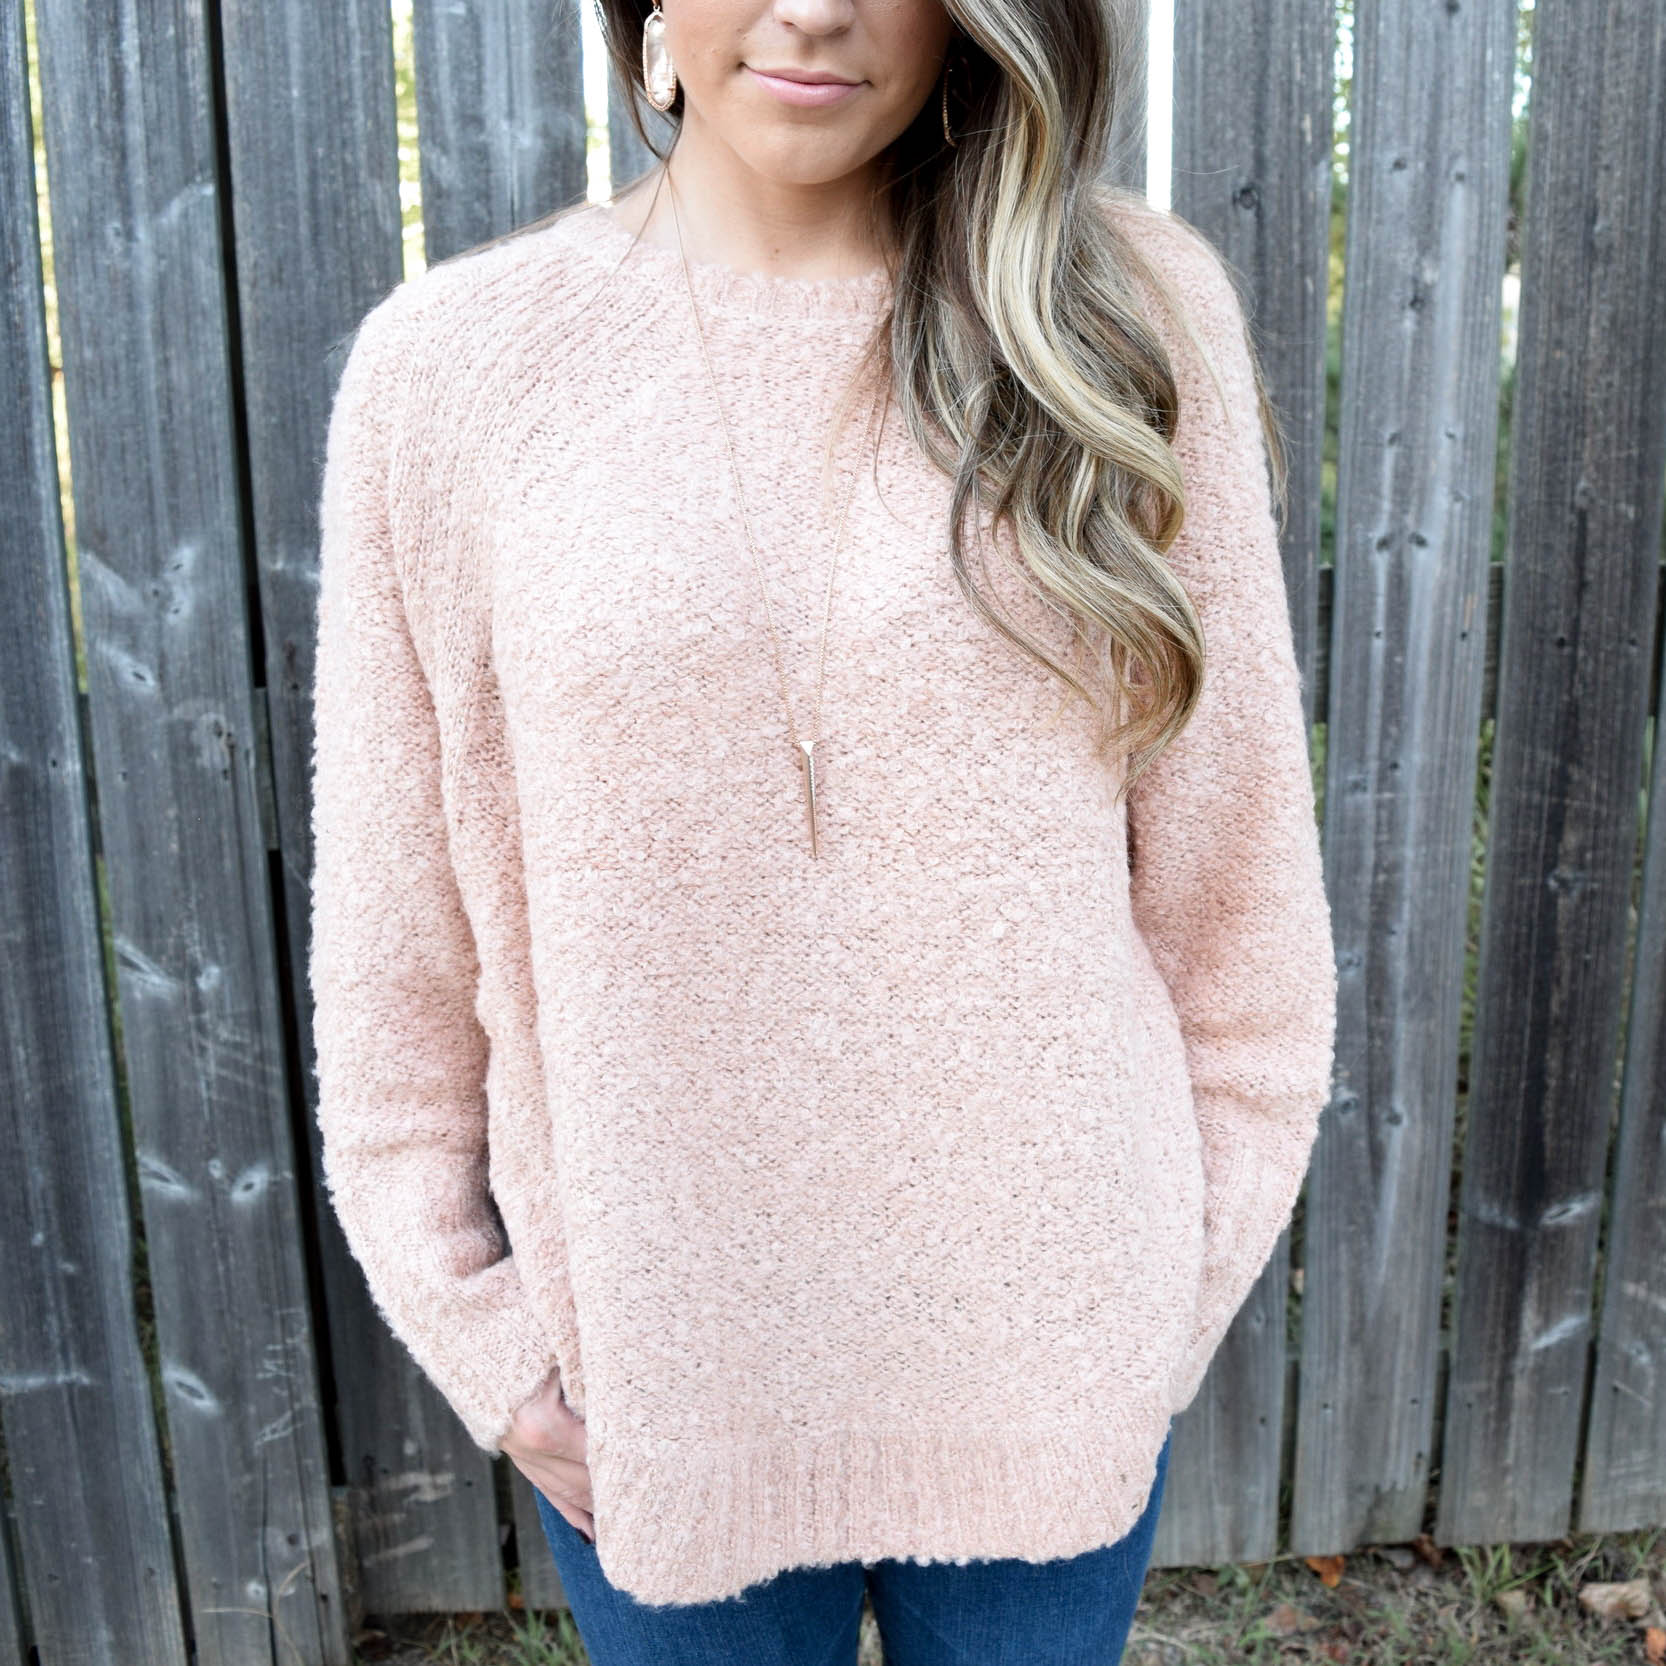 fall outfit idea / blush sweater / how to style blush for fall